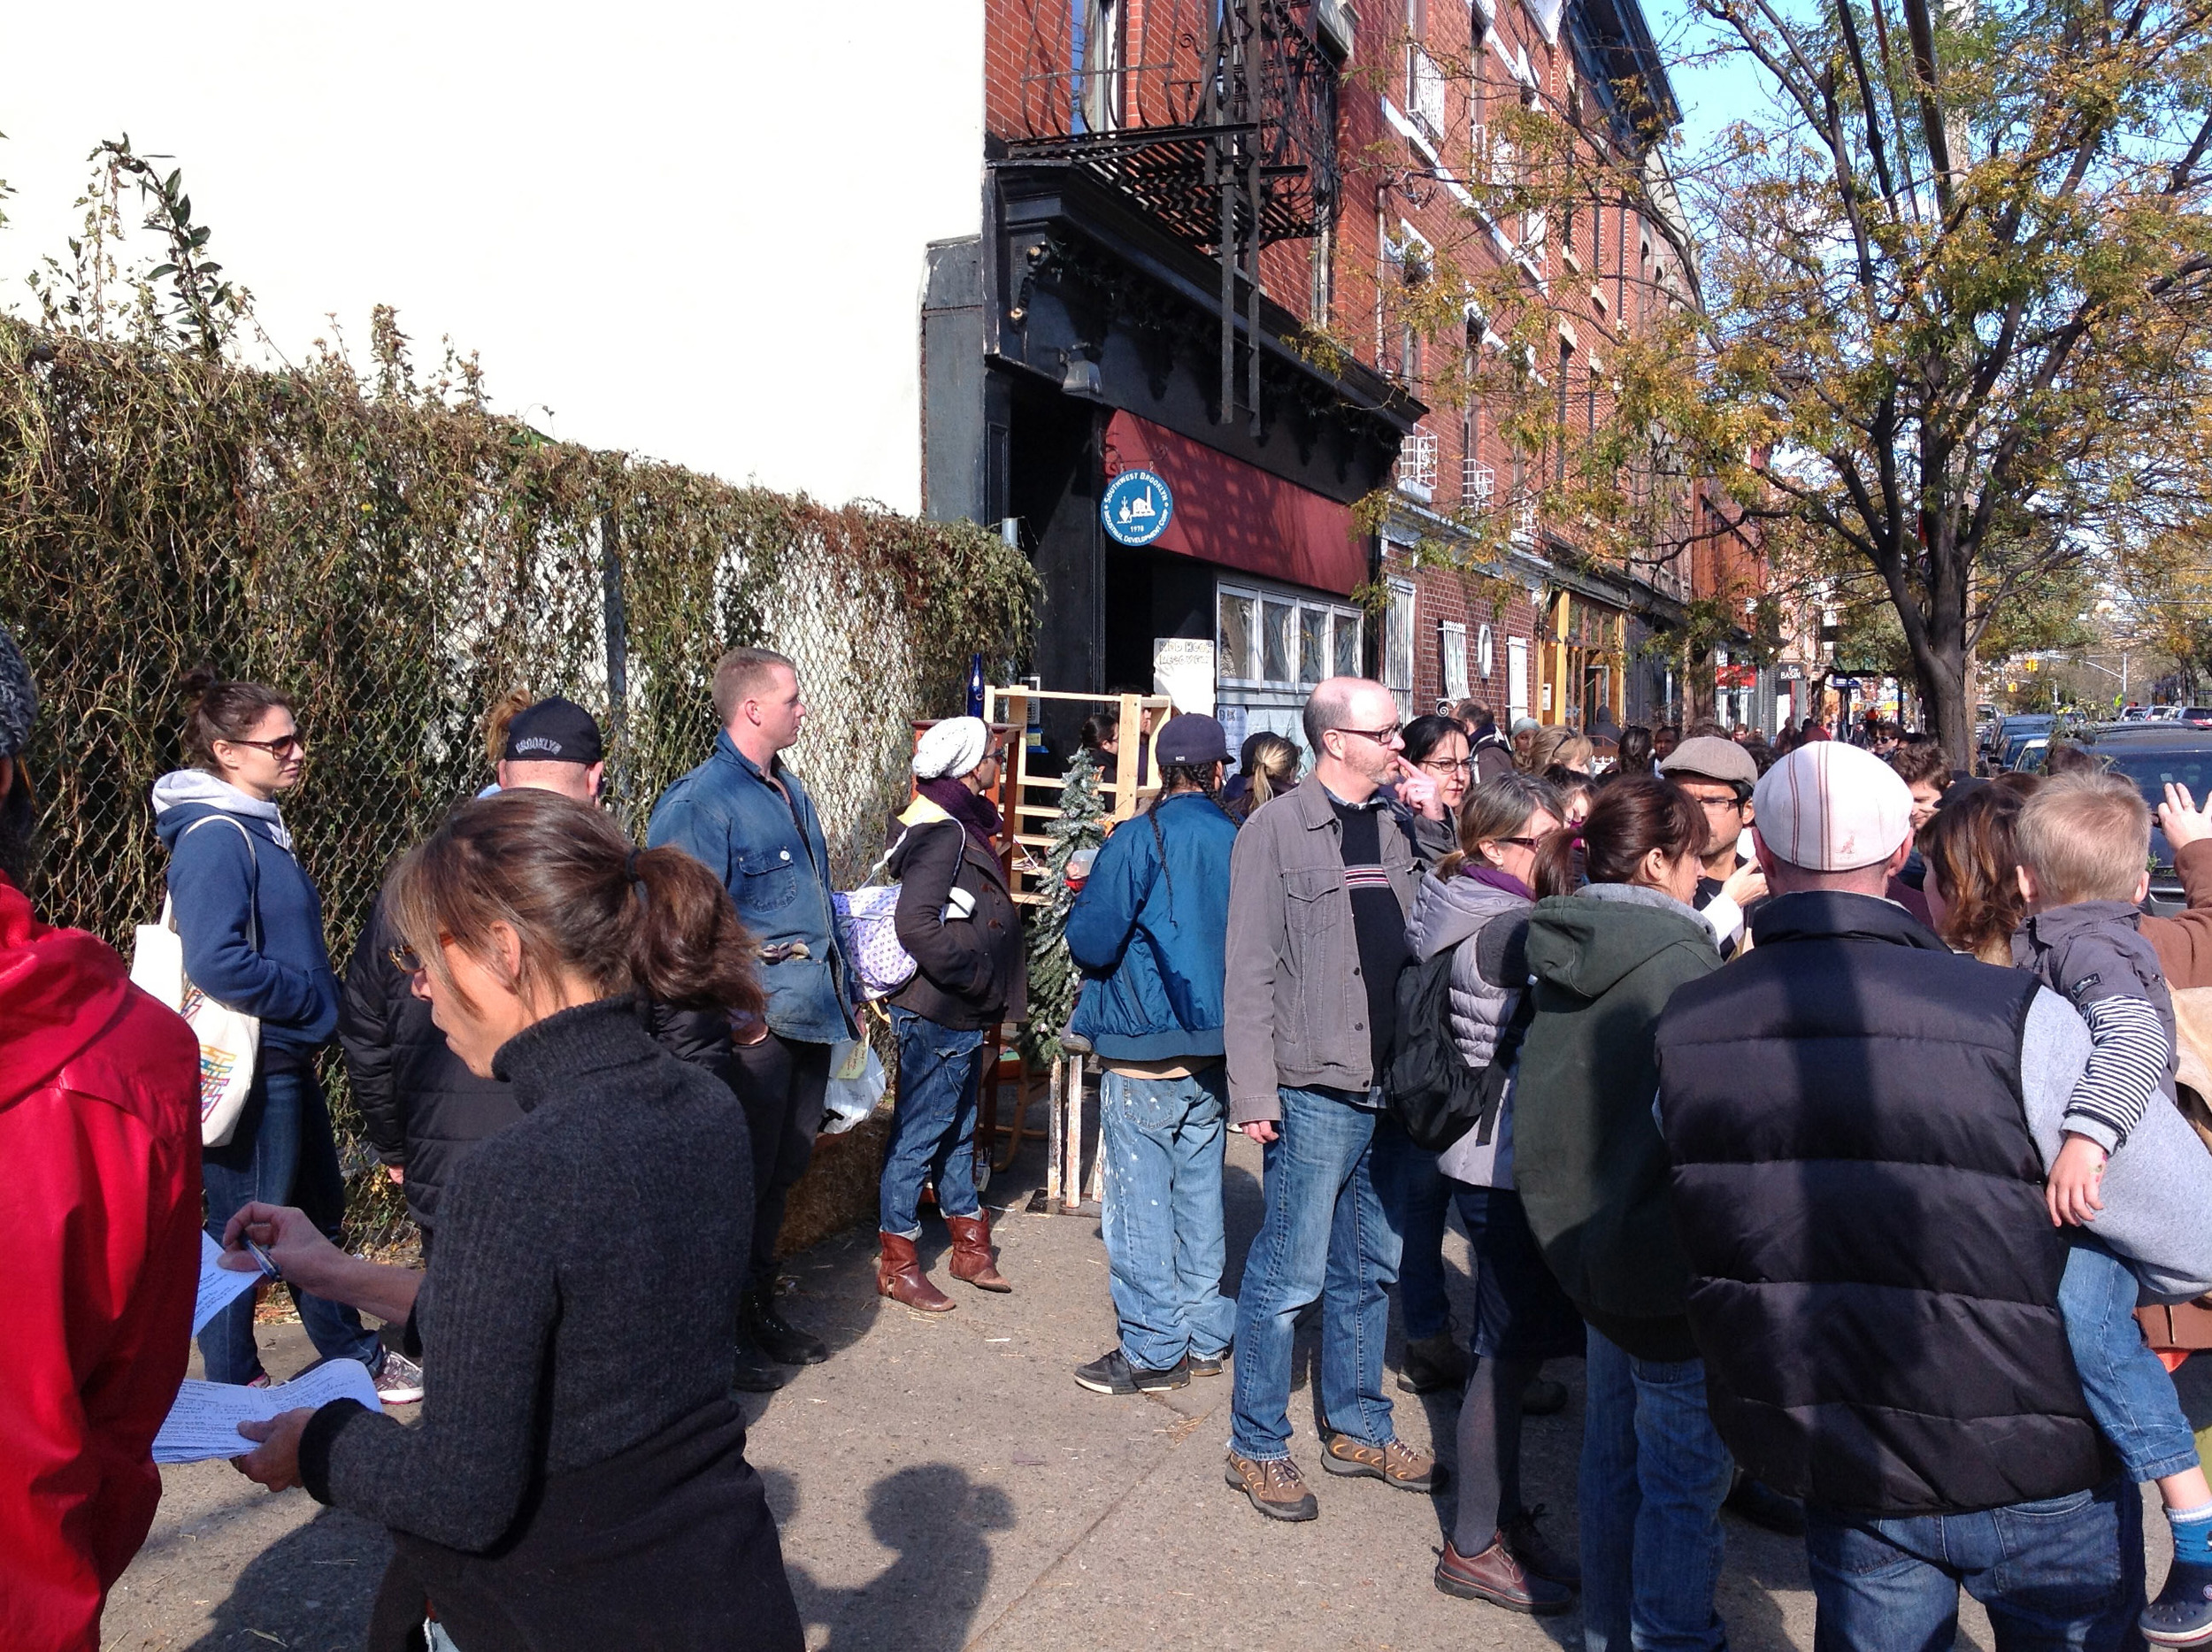 Thousands of volunteers flooded into Red Hook, which were dispatched from SBIDC's Van Brunt Street office by Friday the week of the storm